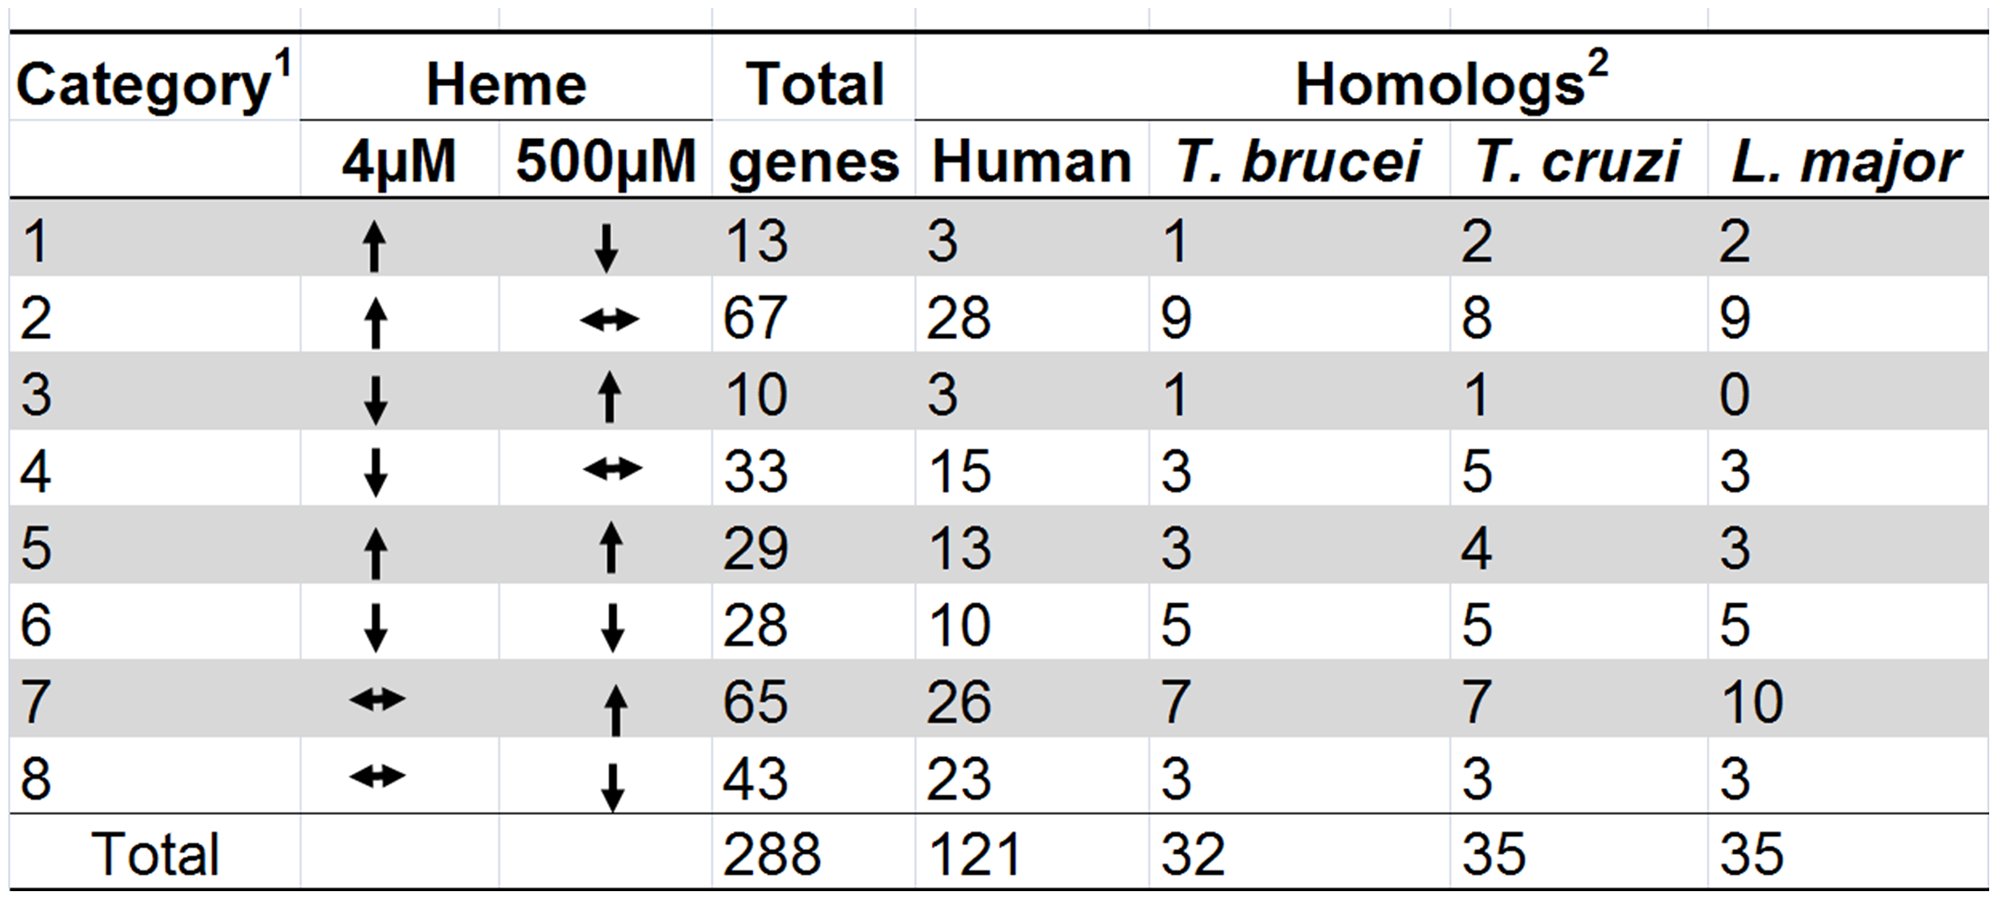 Heme-dependent changes in gene expression.